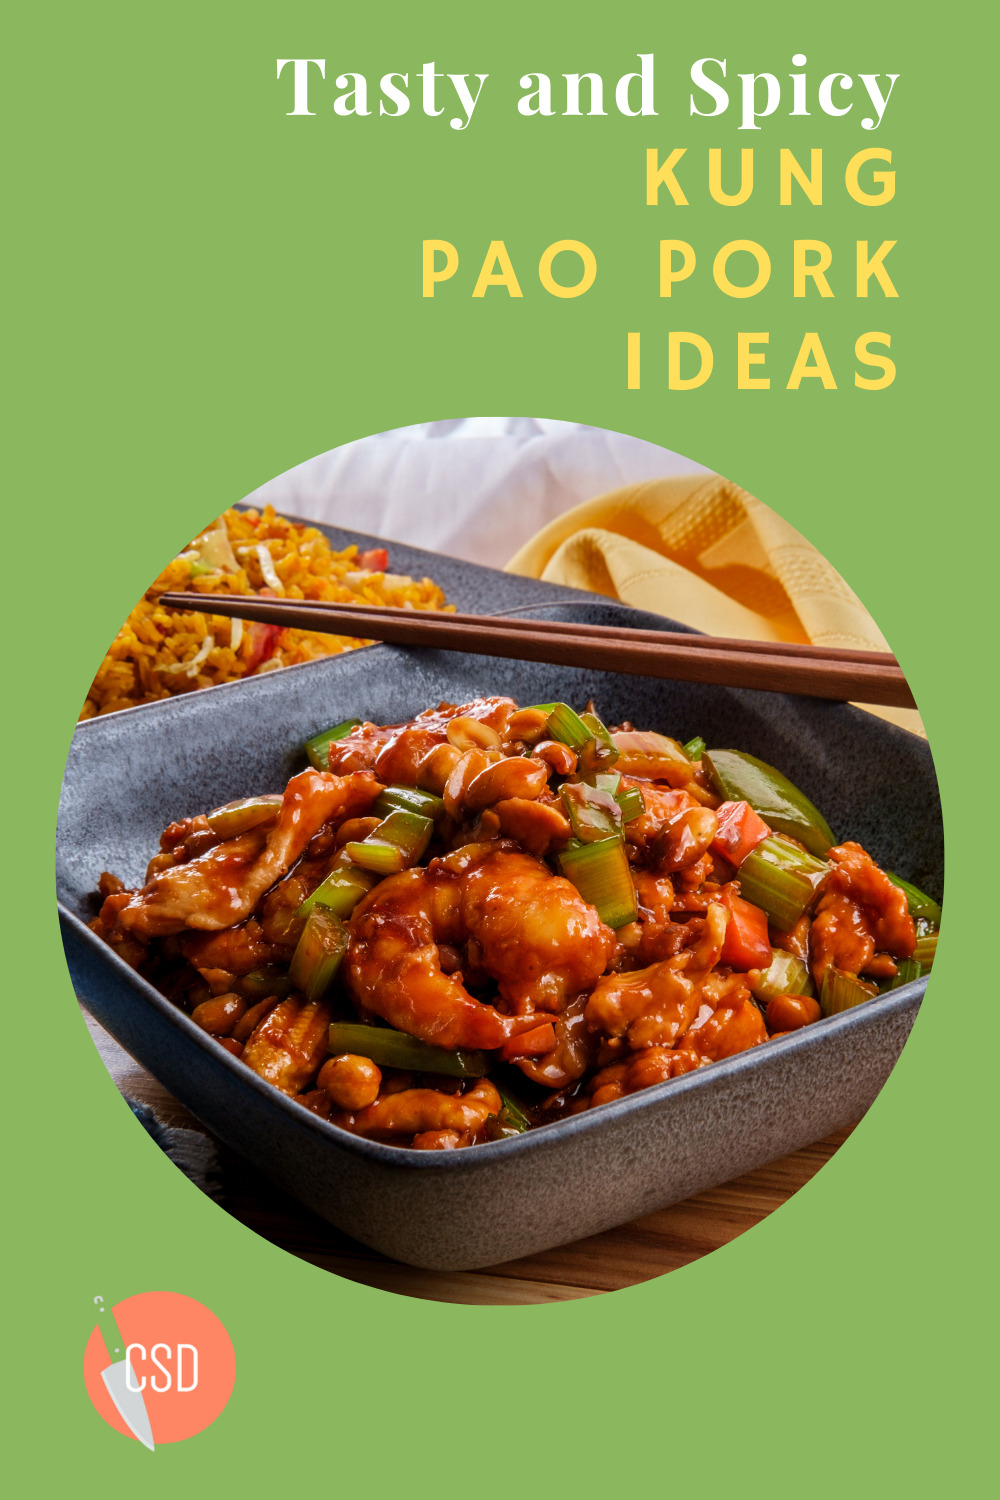 Cutsidedown.com is loaded with the best food and drink recipe ideas for any occasion. Find out what you should prepare for your next event. This Kung Pao Pork recipe will become your family's new staple.